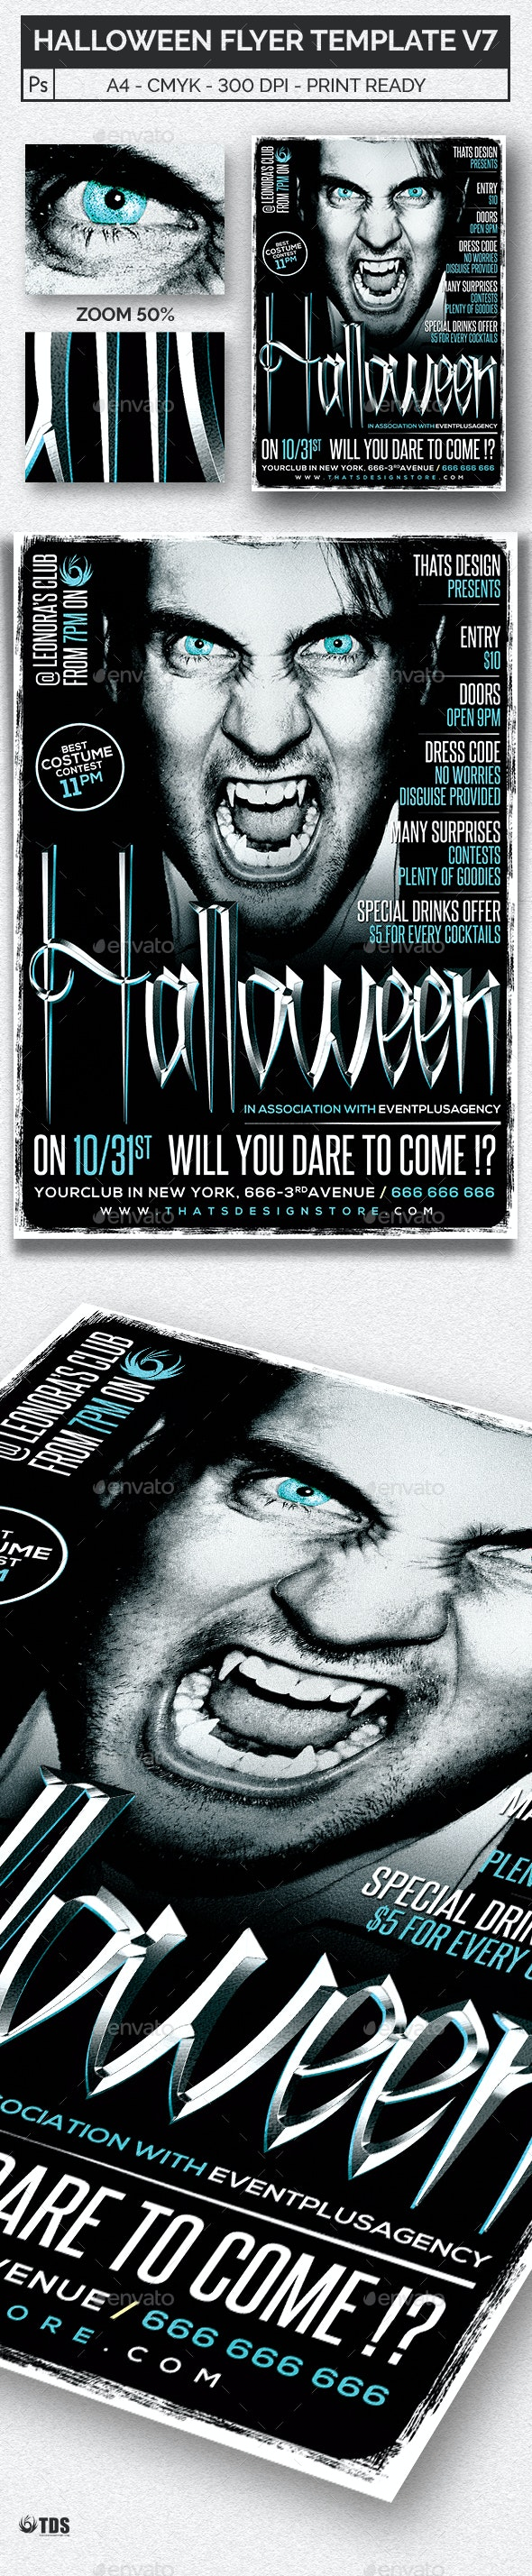 Halloween Flyer Template V7 - Holidays Events